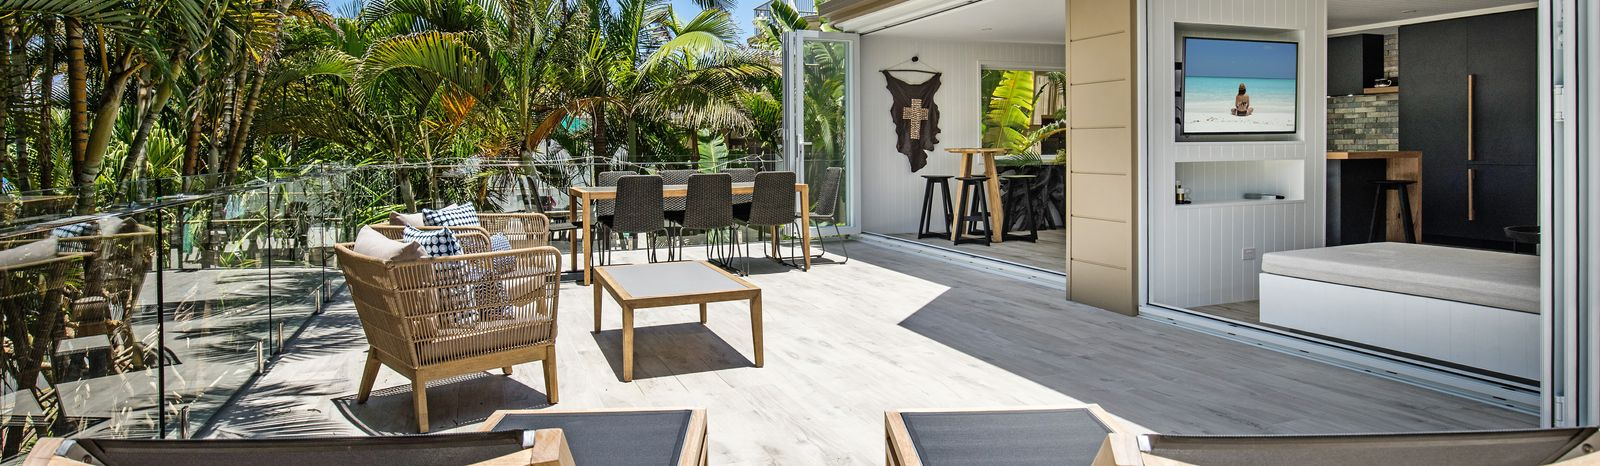 Noosa Luxury Holidays - 1-11 Belmore Terrace, Sunshine Beach - feature